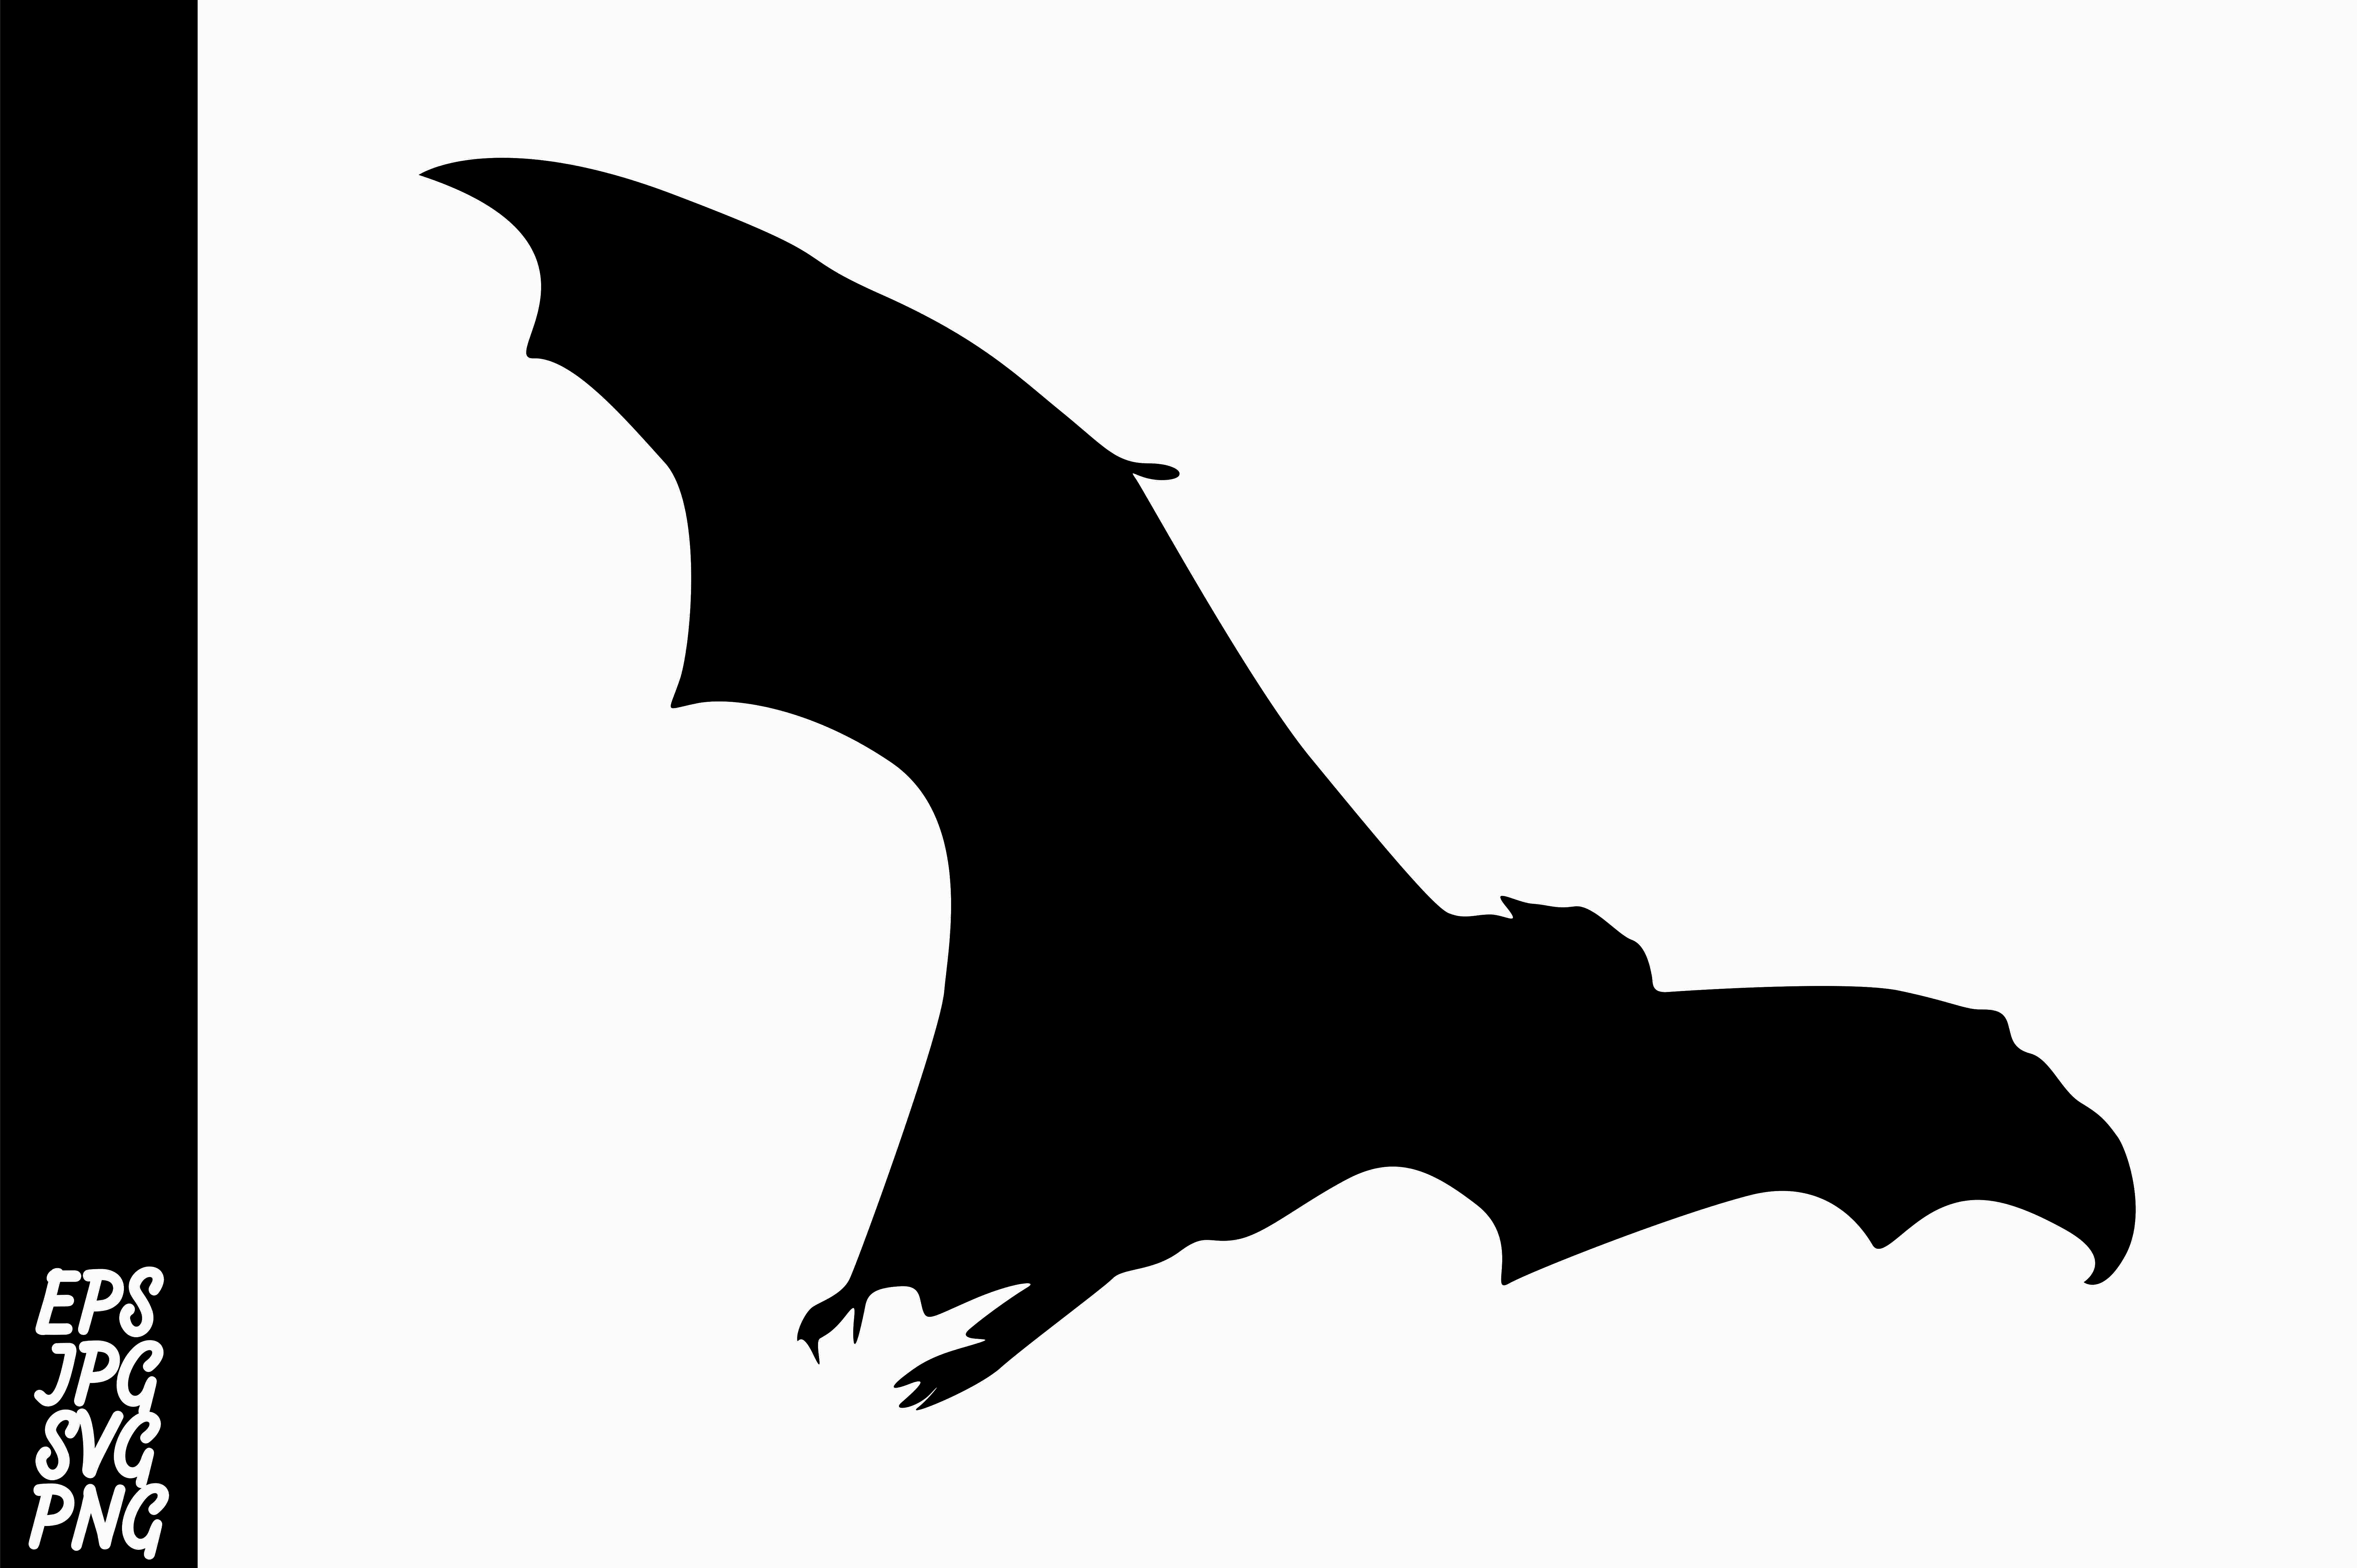 Download Free Silhouette Bat Graphic By Arief Sapta Adjie Creative Fabrica for Cricut Explore, Silhouette and other cutting machines.